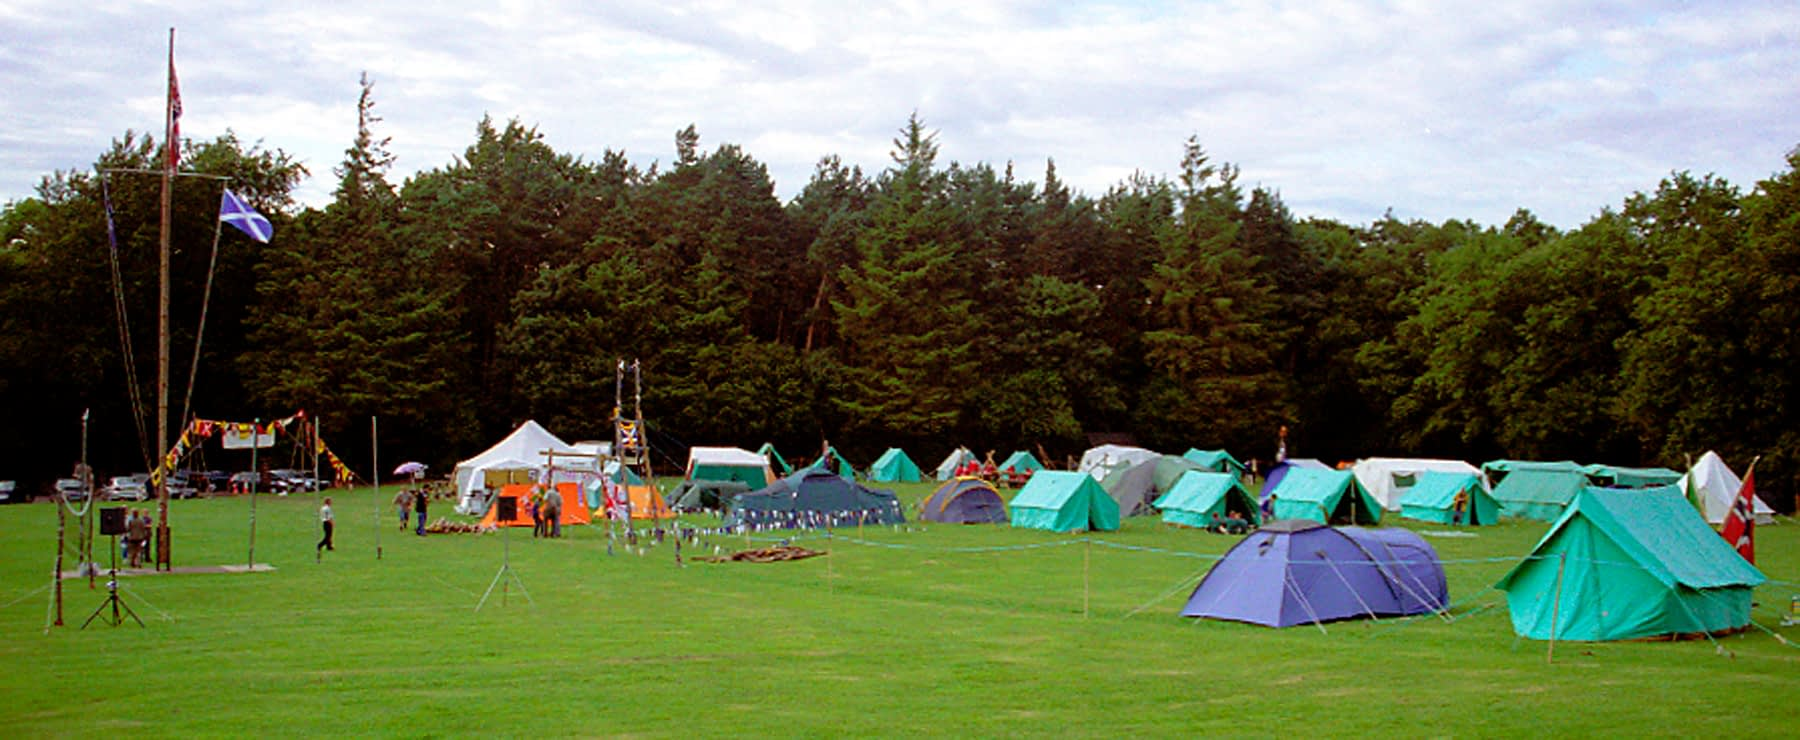 Camping event at Bonaly